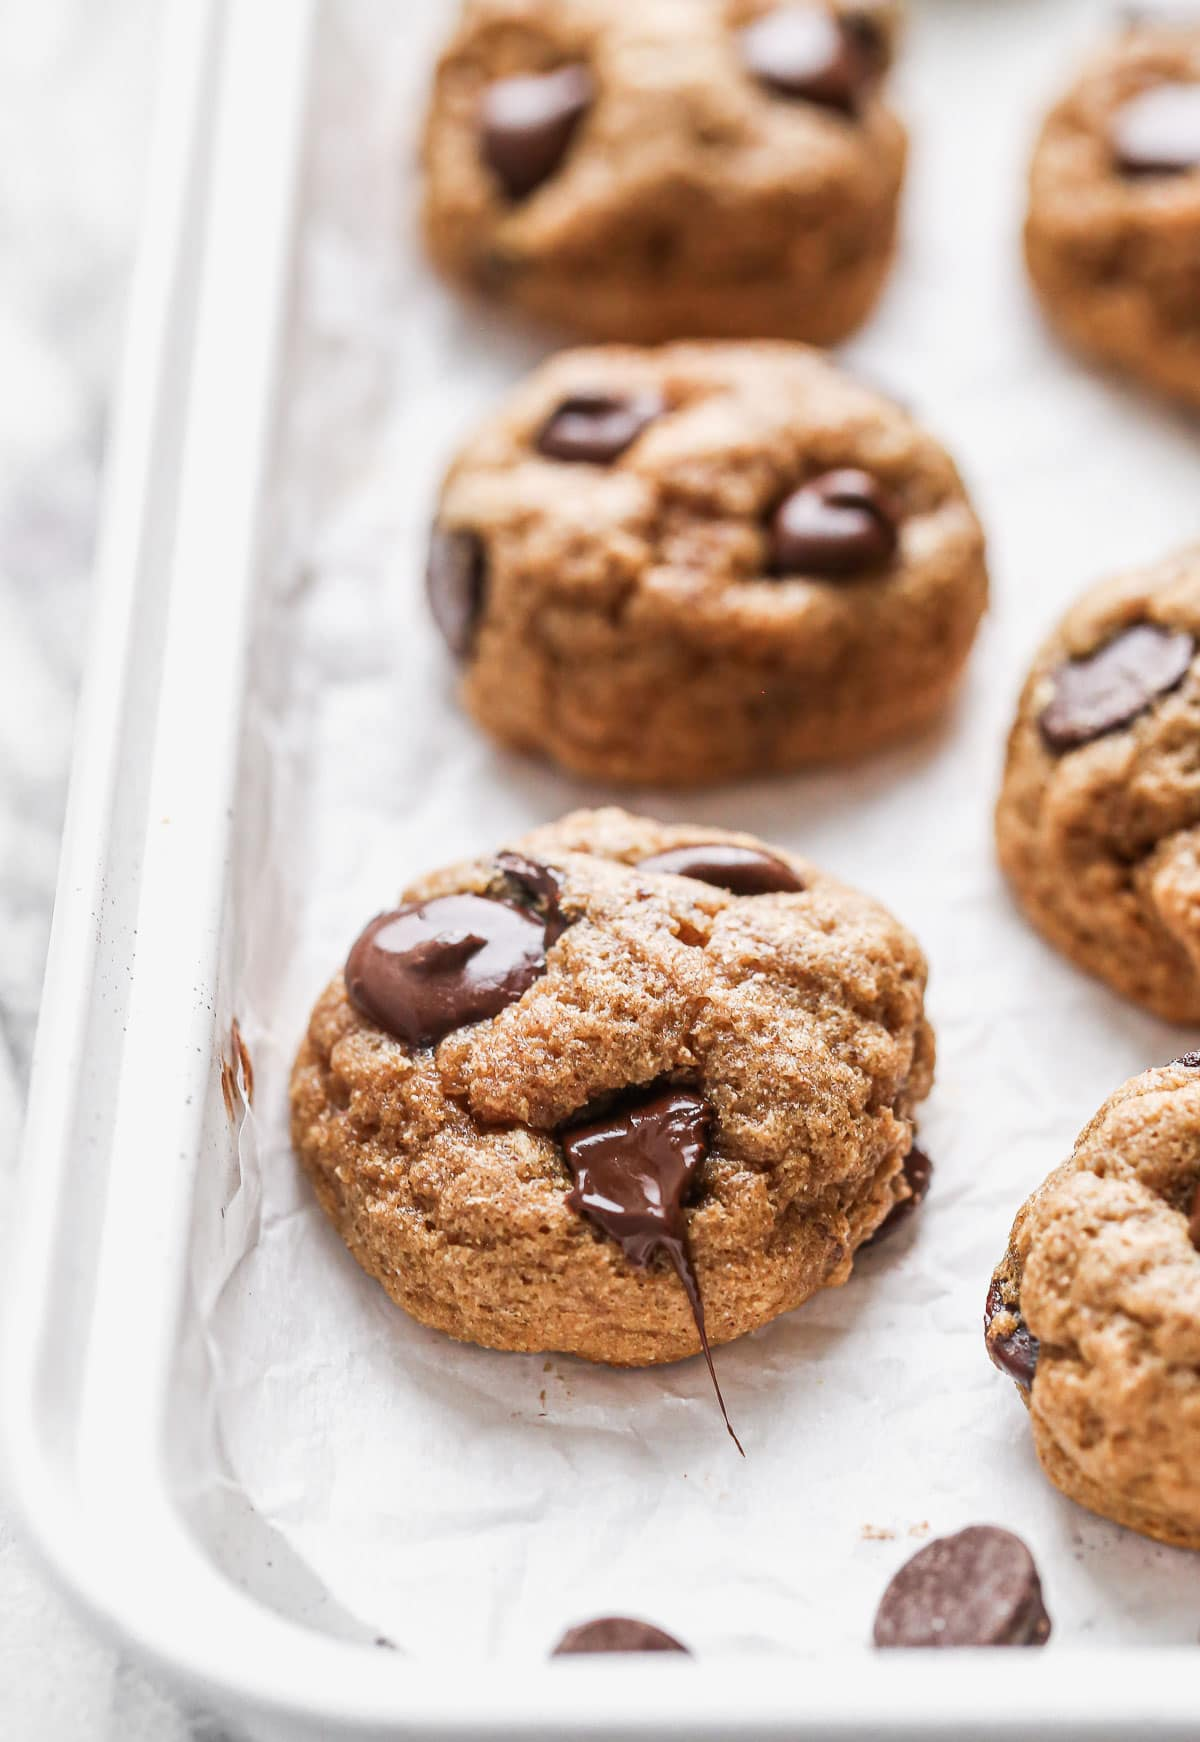 Gooey whole wheat chocolate chip cookies